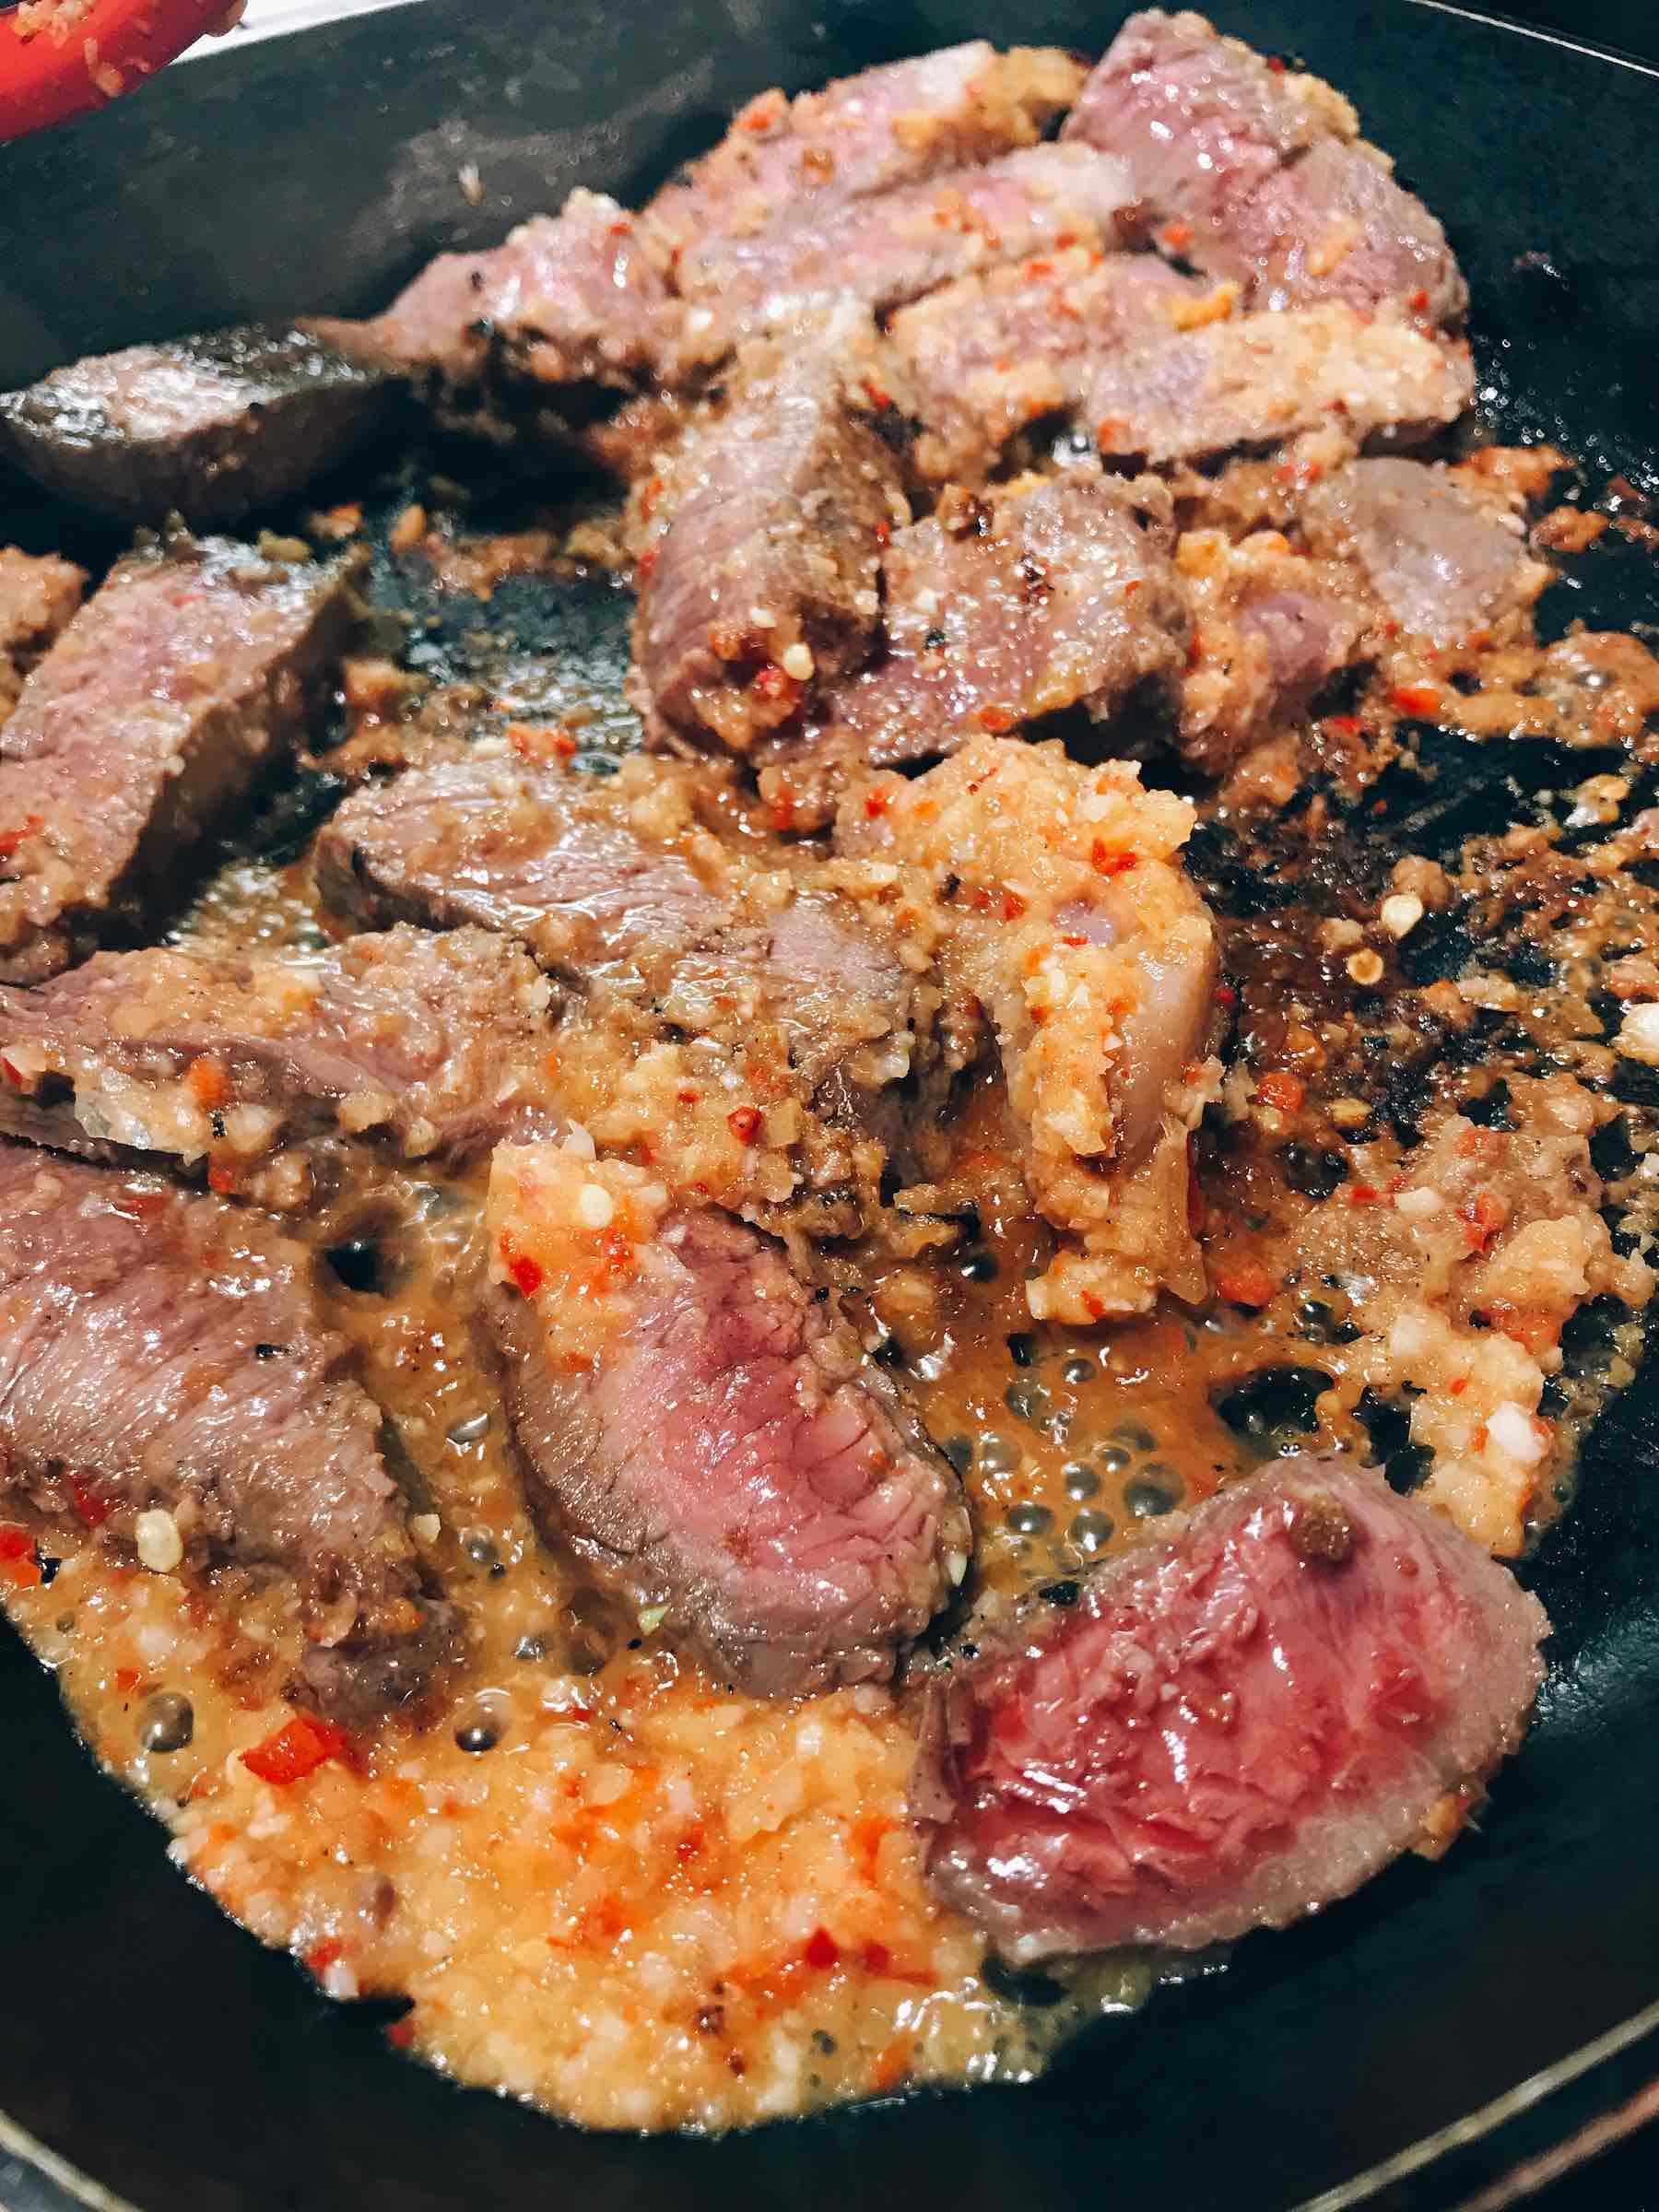 Steak Asada